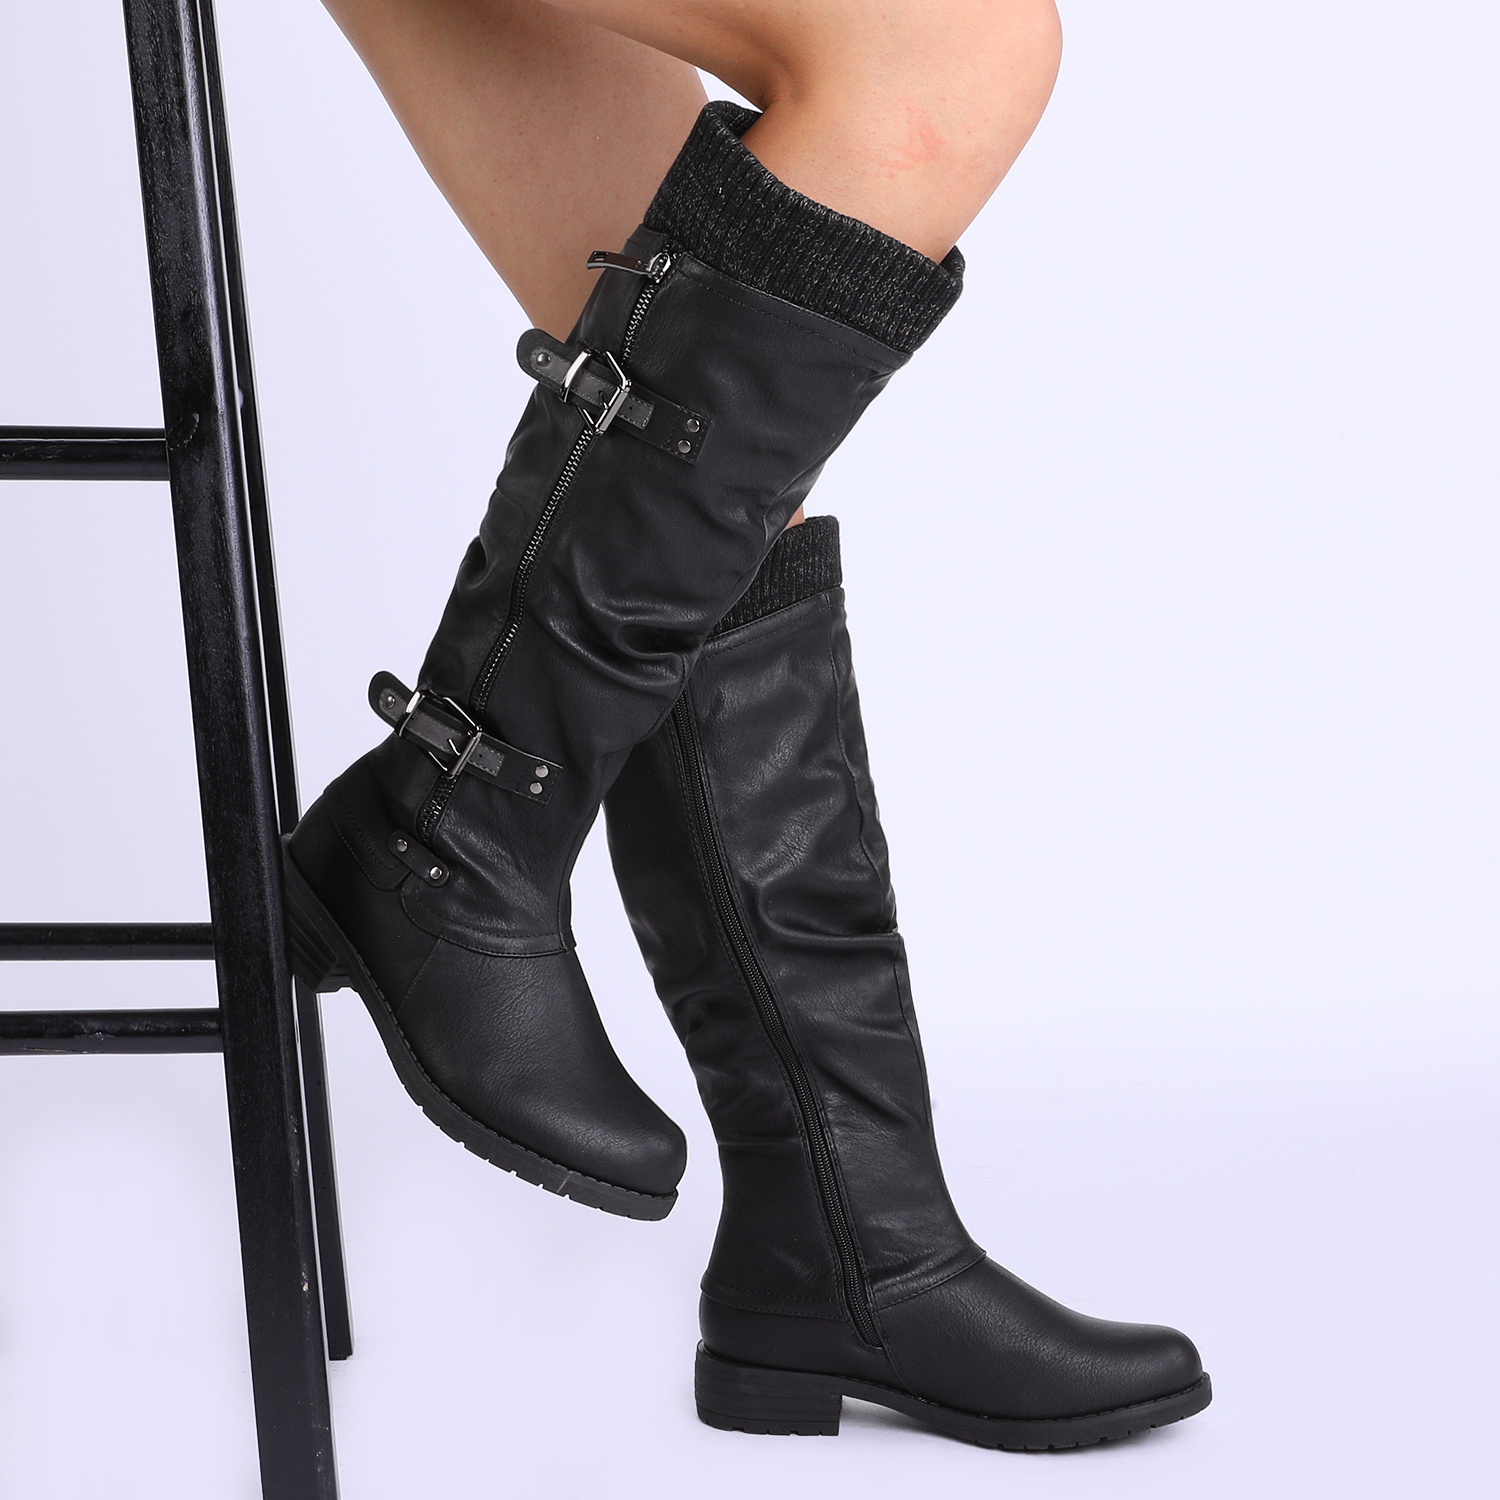 DREAM-PAIRS-Womens-DEPP-Cowgirl-Soft-PU-Leather-Combat-Knee-High-Riding-Boots thumbnail 11